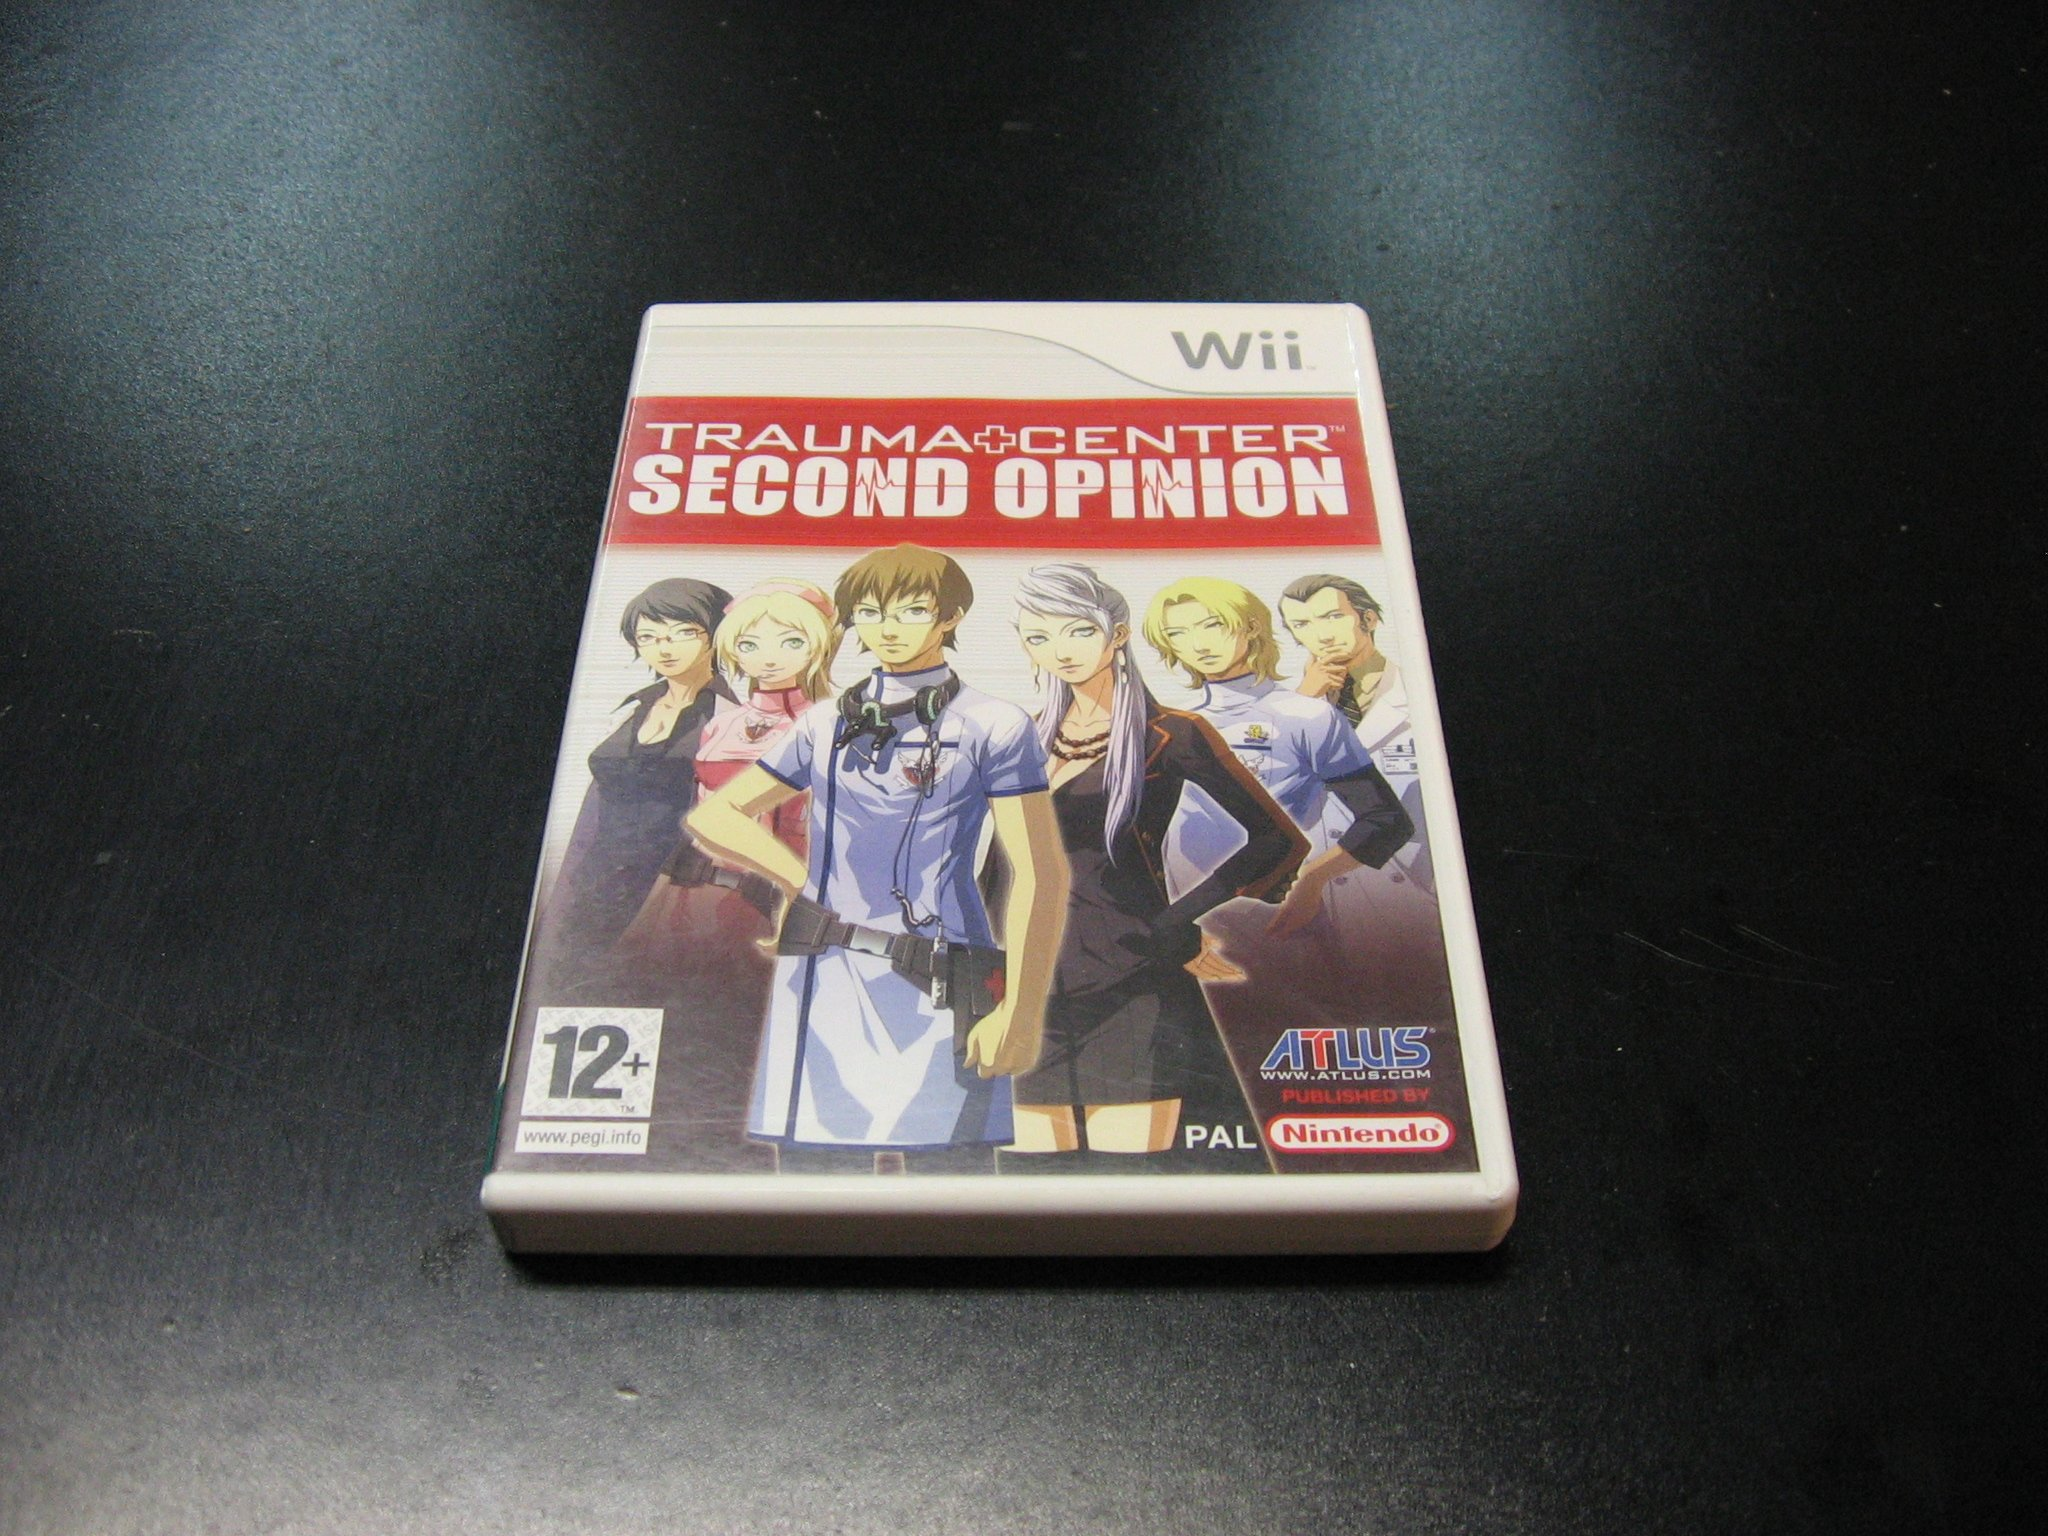 TRAUMA CENTER SECOND OPINION - GRA Nintendo Wii Sklep